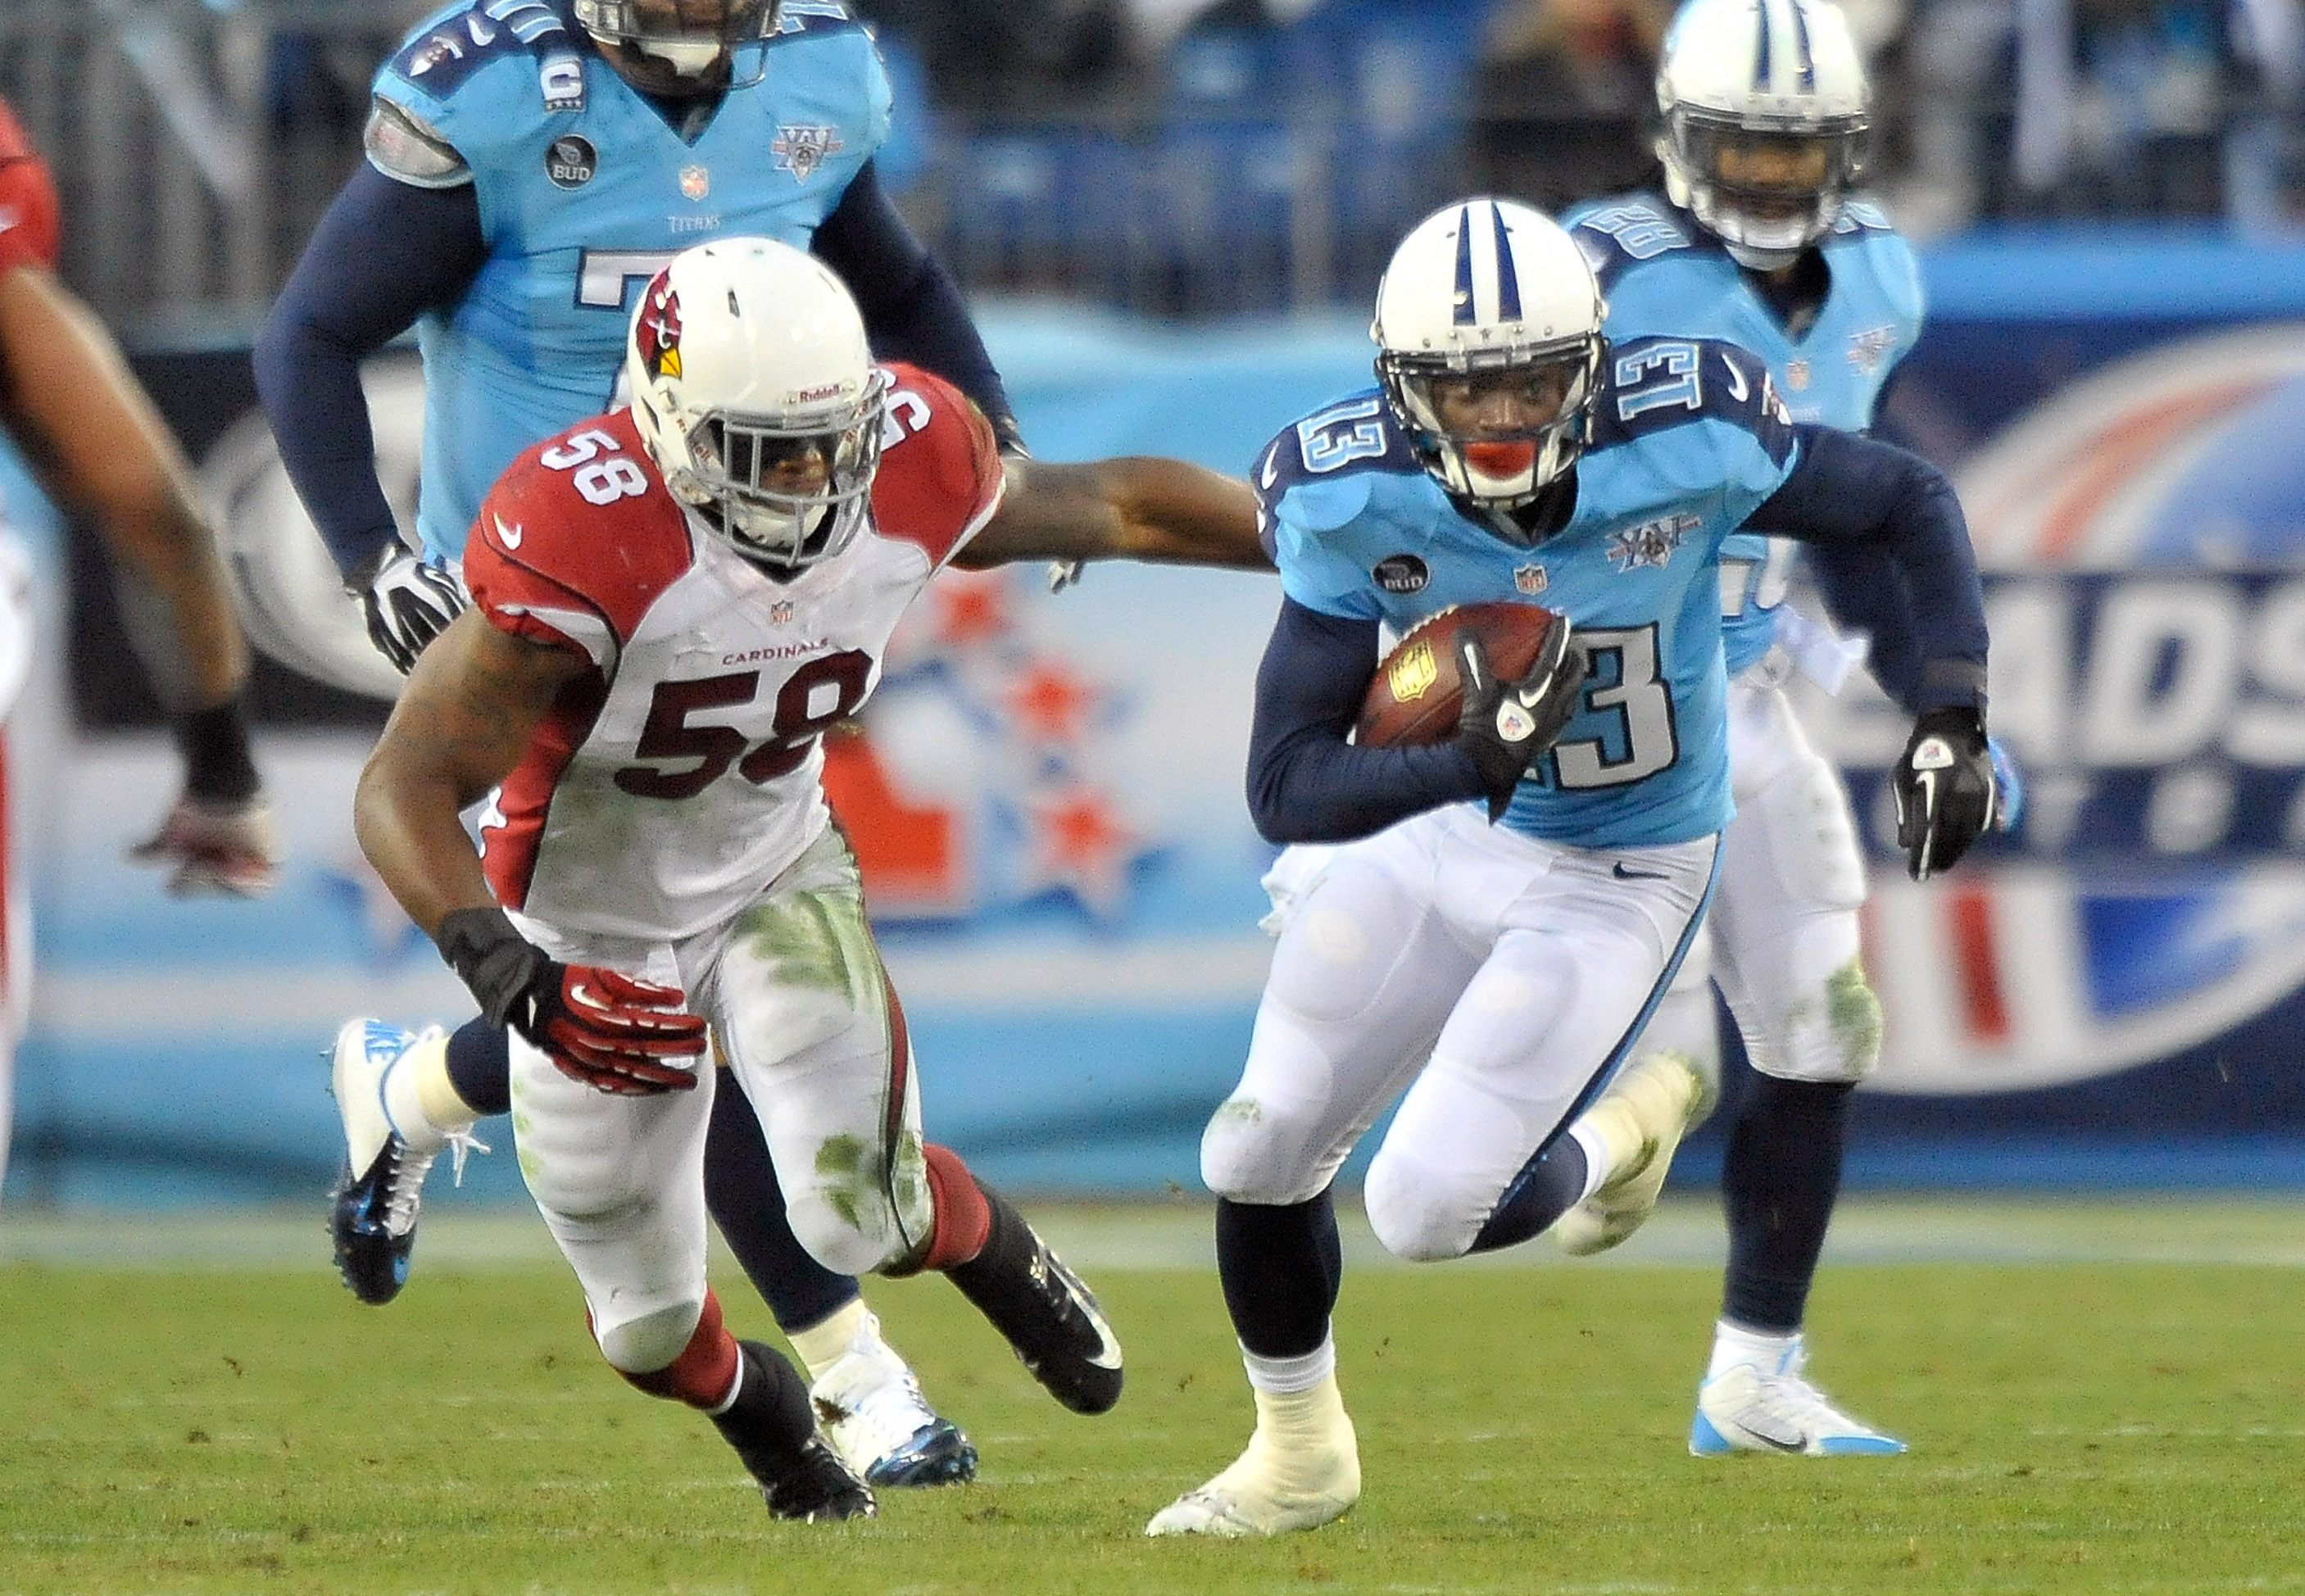 7618202-nfl-arizona-cardinals-at-tennessee-titans